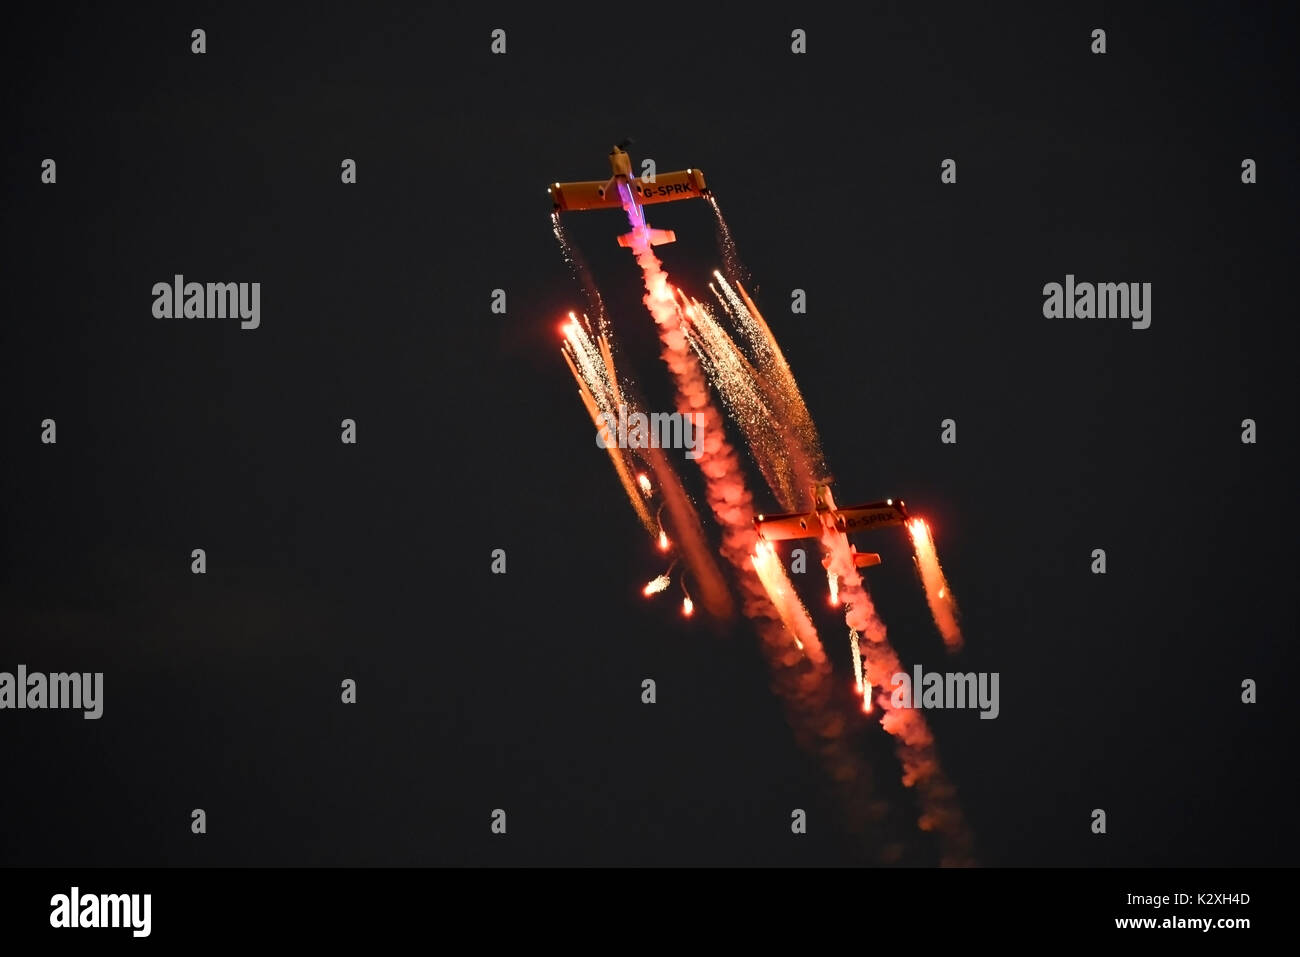 Fireflies aerobatic display team flying their pyrotechnics show at the Clacton airshow. Space for copy - Stock Image